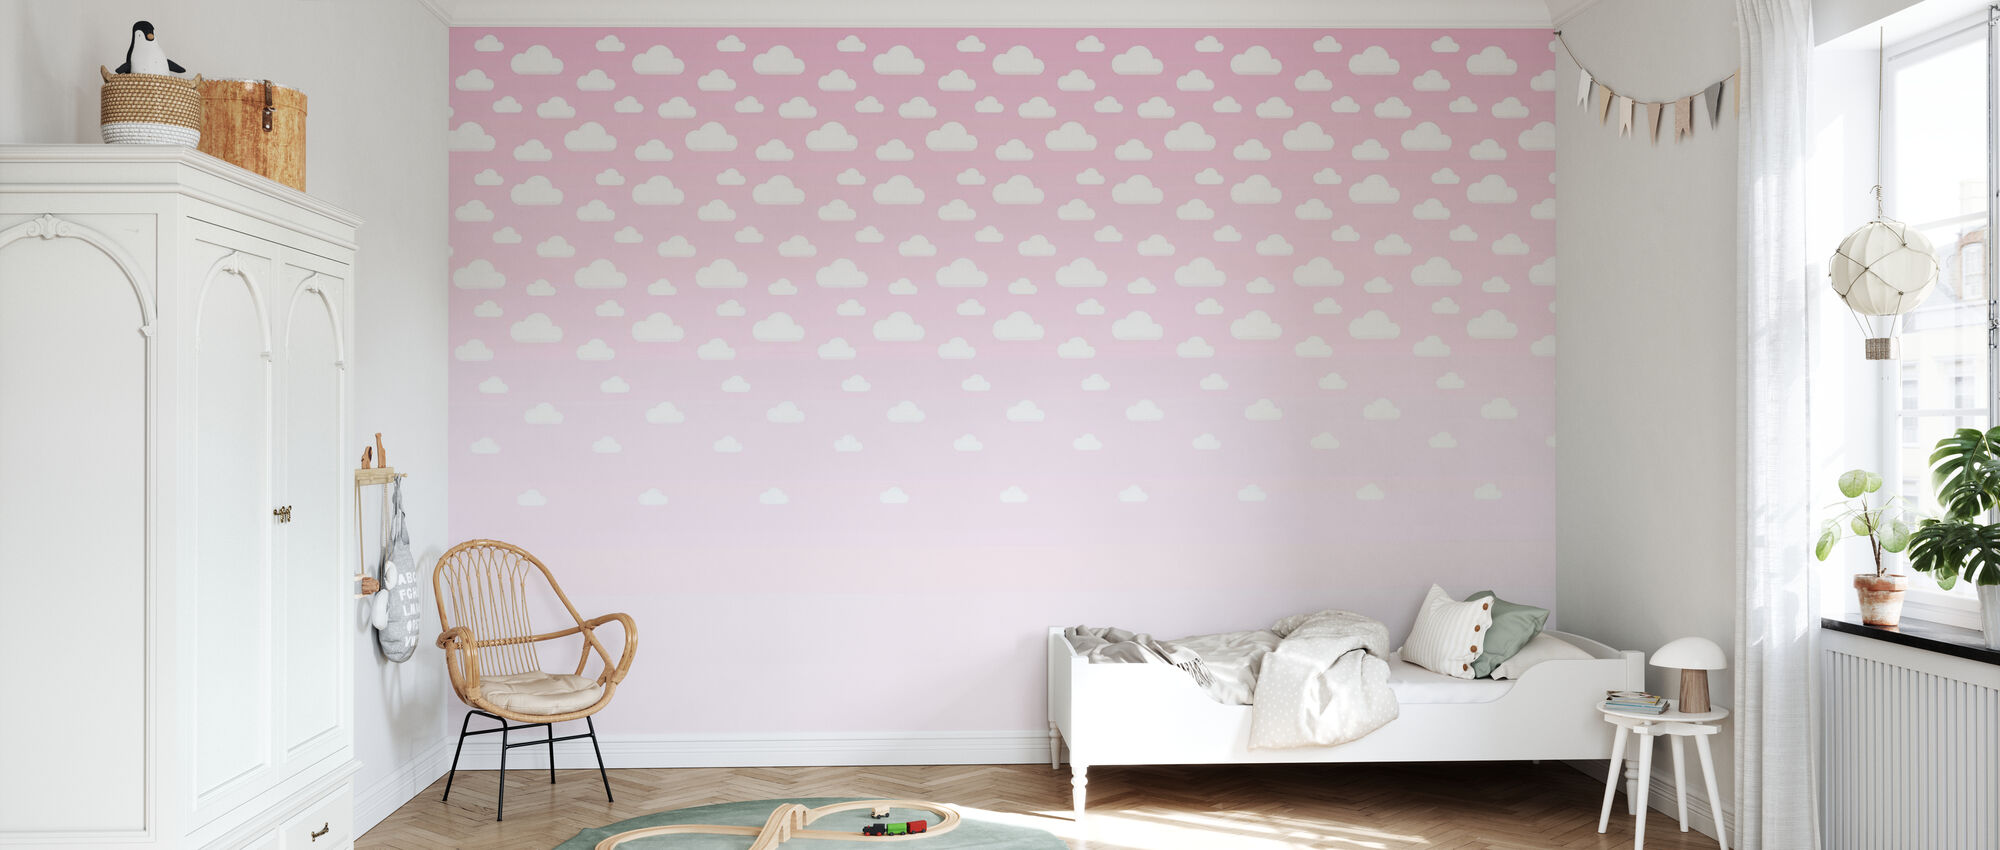 Cumulus Pink - Wallpaper - Kids Room